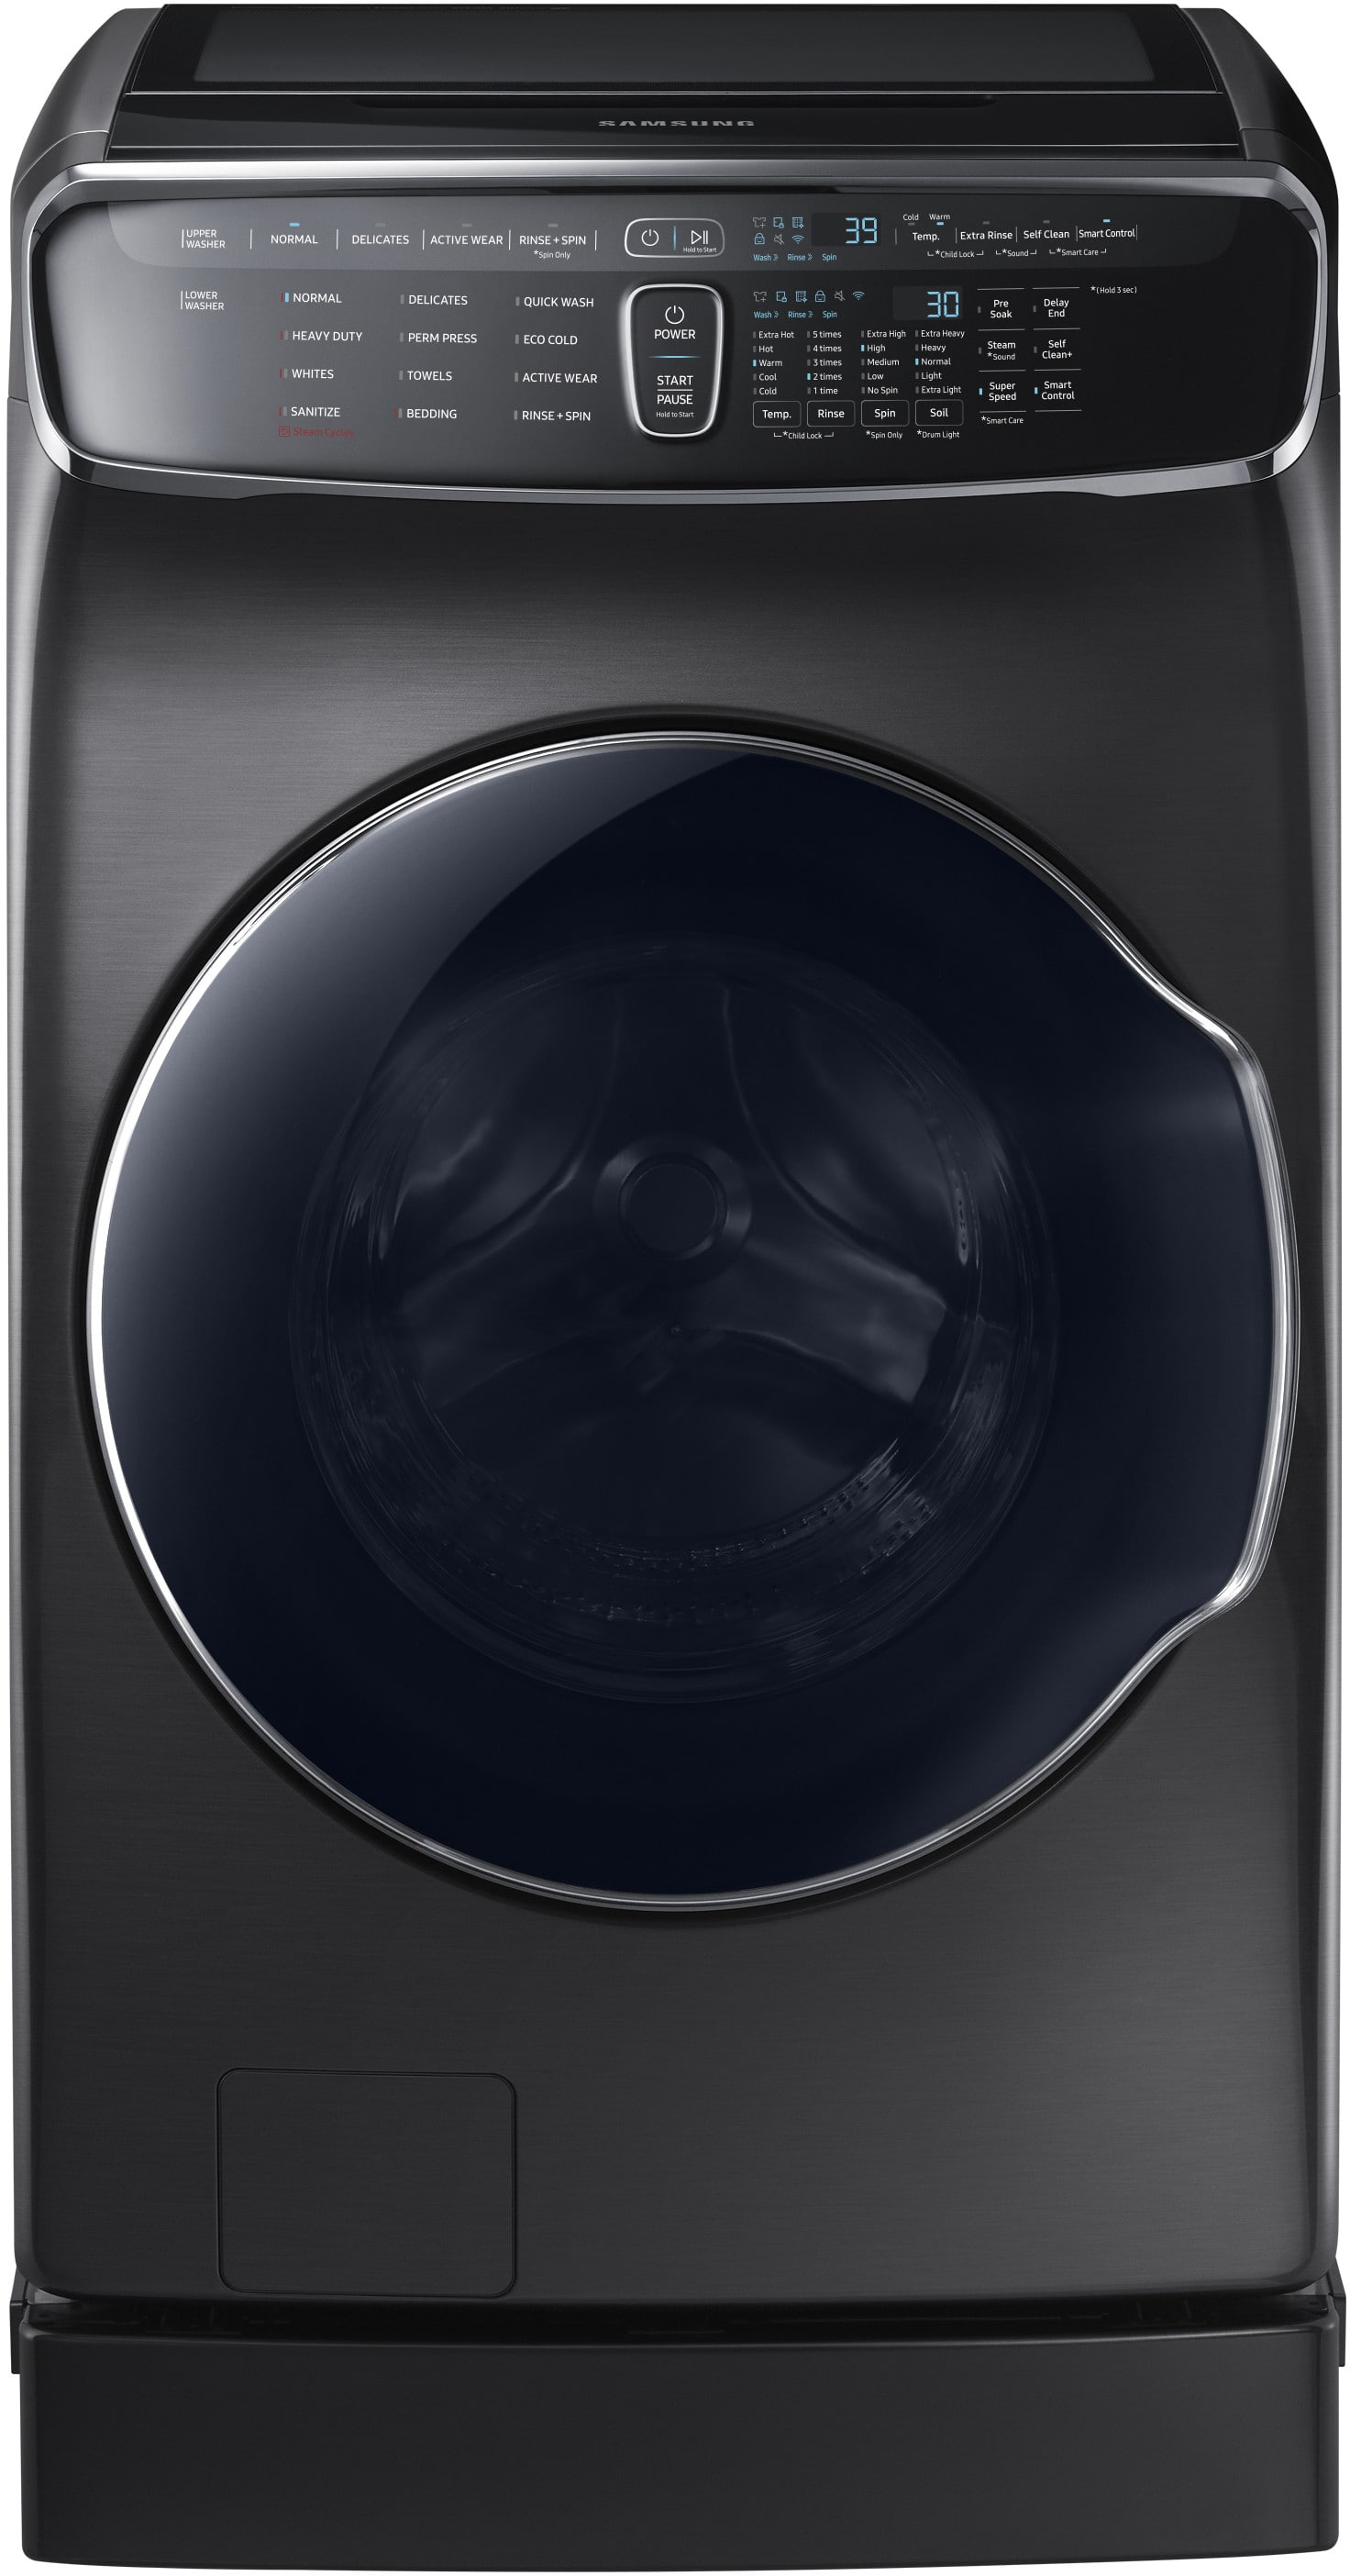 Samsung dve60m9900v 27 inch flexdry electric dryer with multi steam you might also like fandeluxe Images